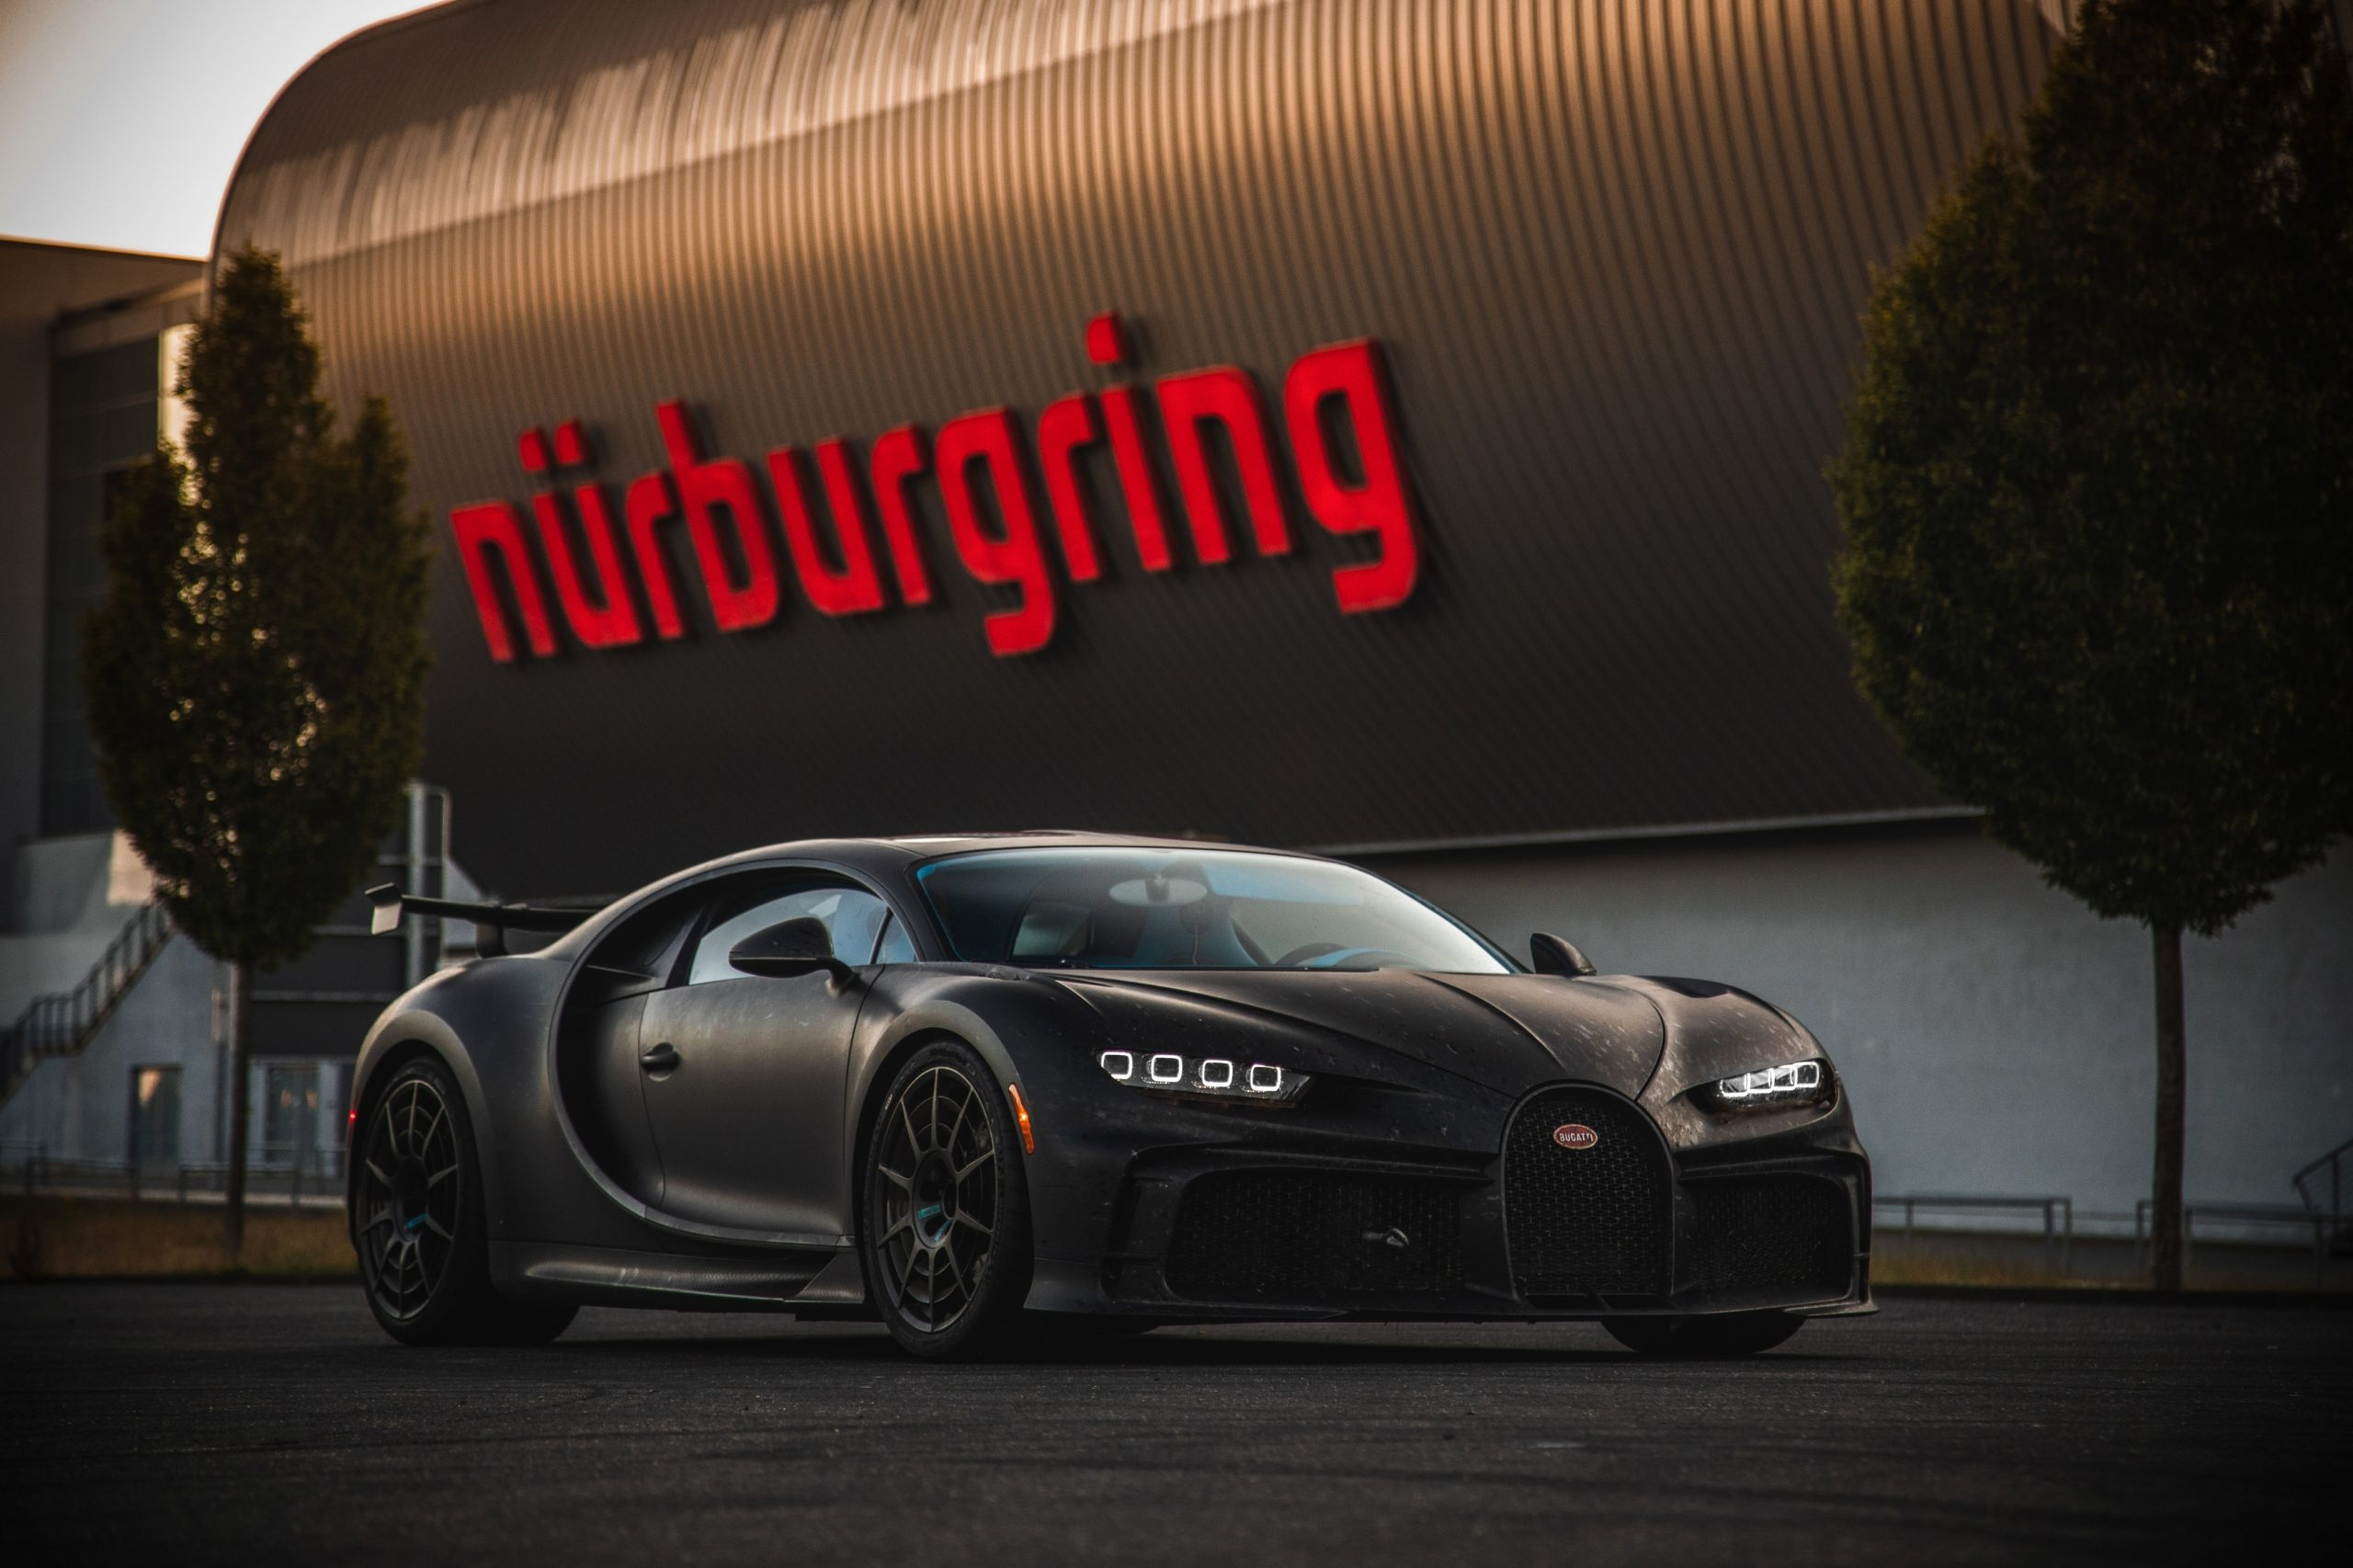 Gridlock at The Nürburgring as BMW, Bugatti, and AMG test latest sports cars